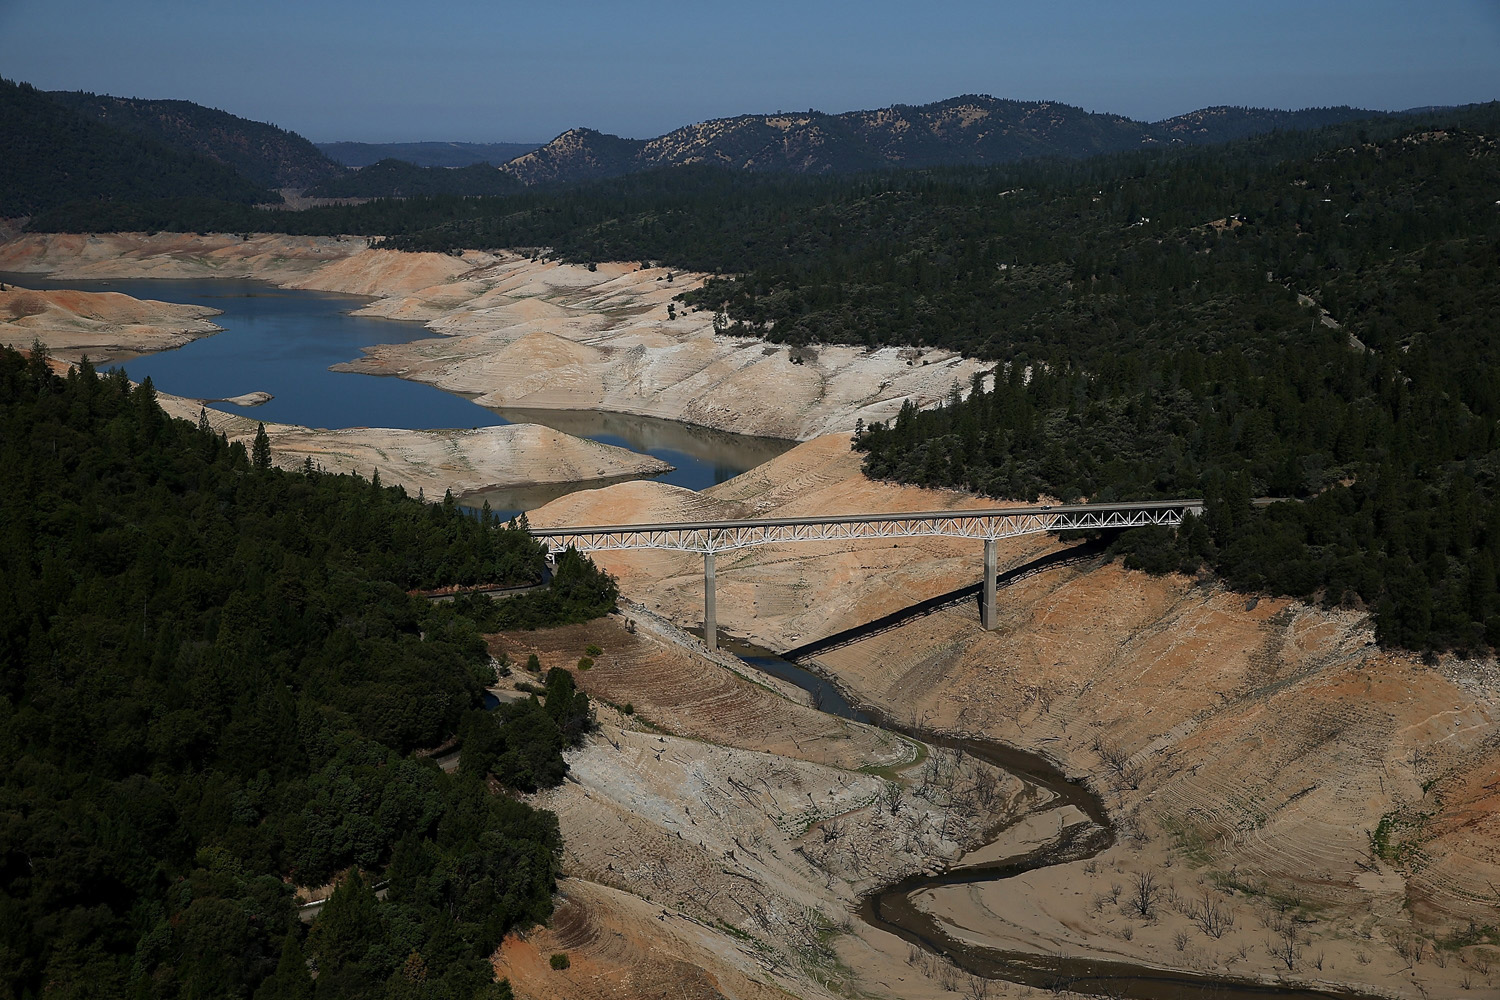 Aug. 19, 2014. The Enterprise Bridge passes over a section of Lake Oroville that is nearly dry in Oroville, California. As the severe drought in California continues for a third straight year, water levels in the State's lakes and reservoirs is reaching historic lows.